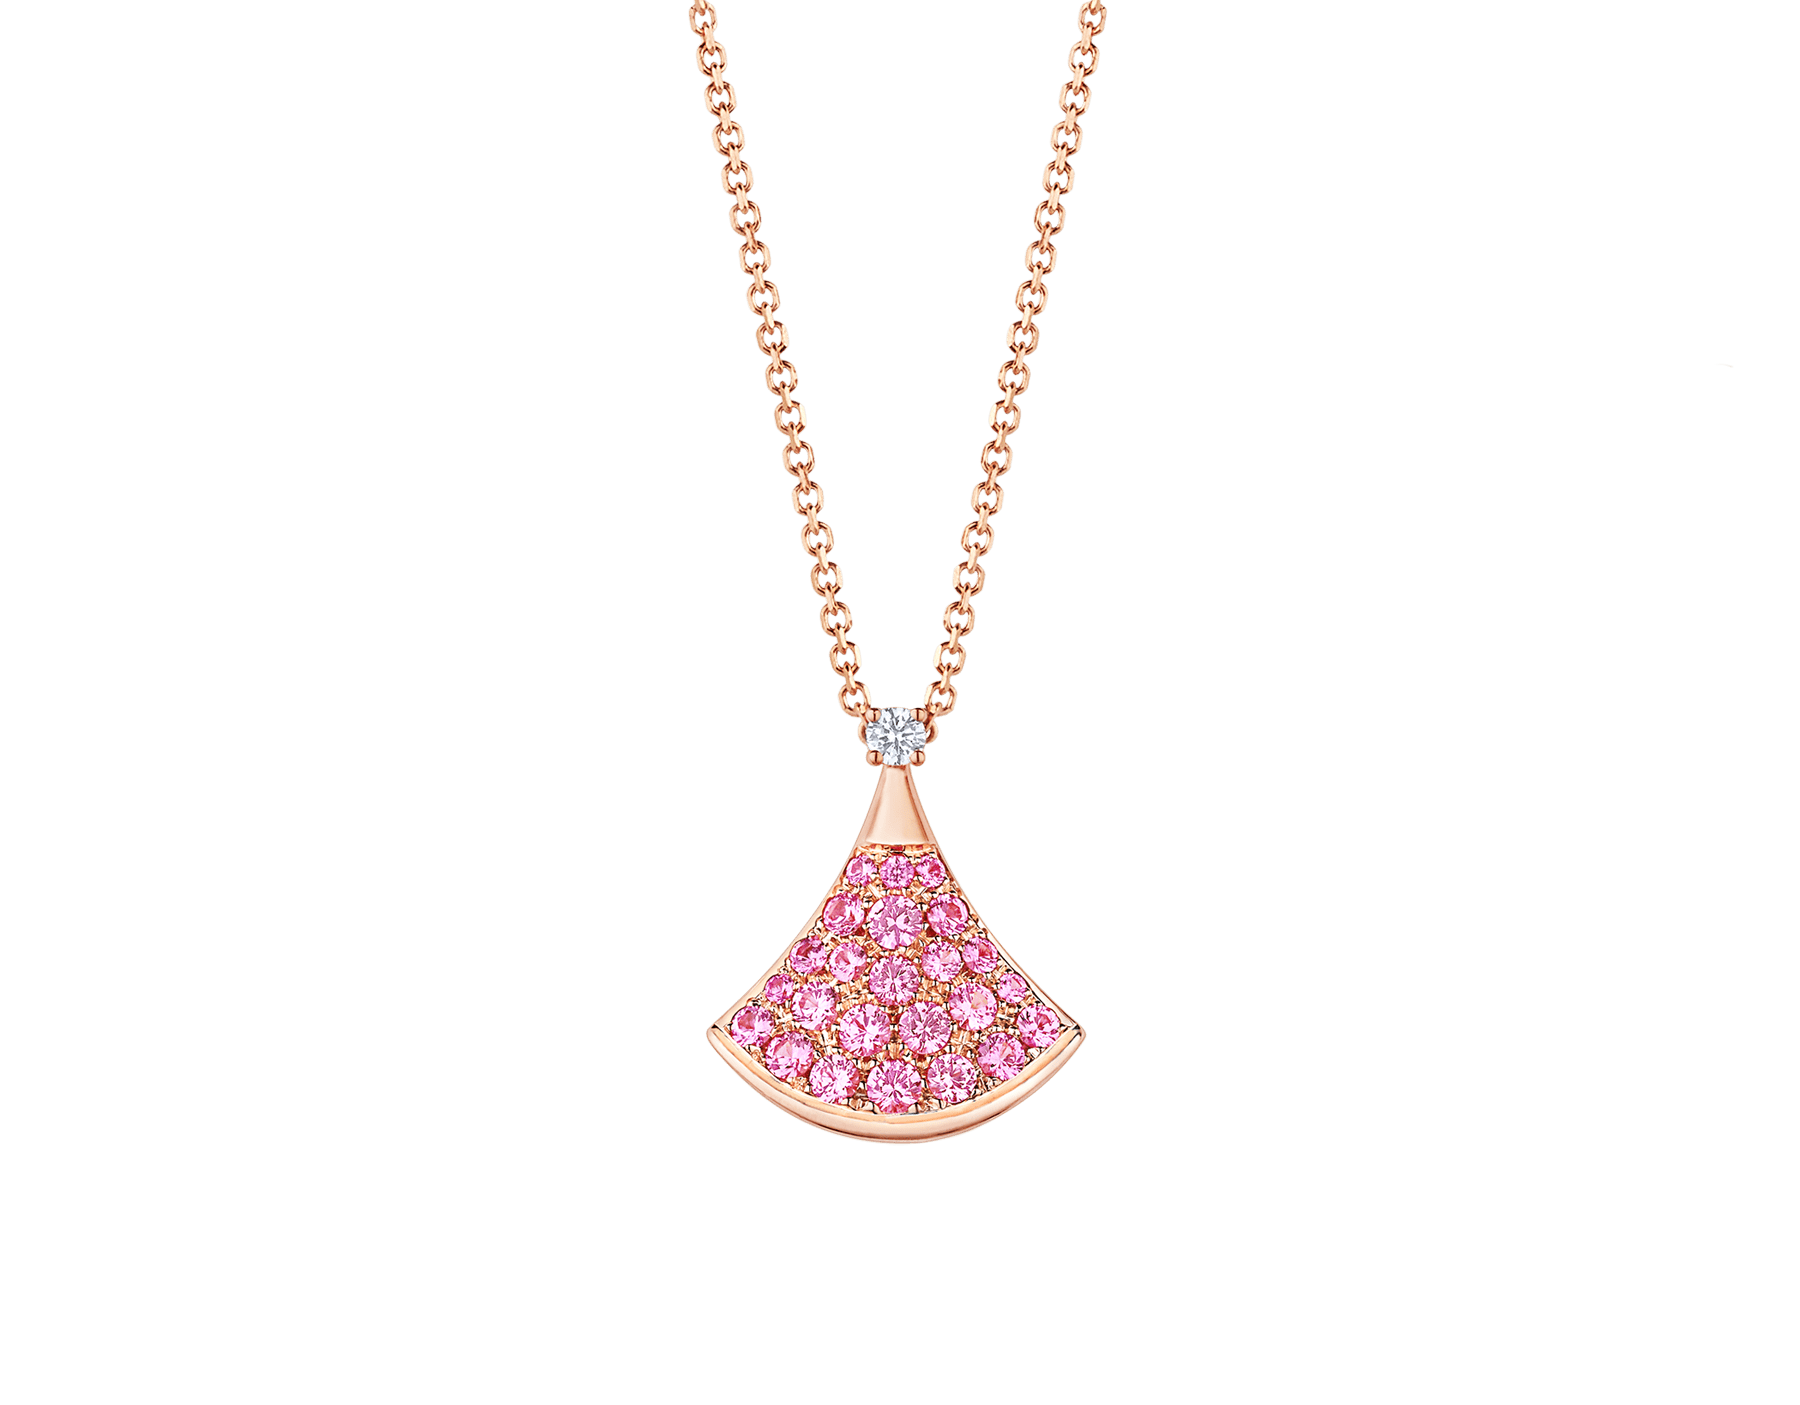 DIVAS' DREAM 18 kt rose gold necklace with 18 kt rose gold pendant set with pink pavé sapphires (0.55 ct) and one diamond. 355889 image 1